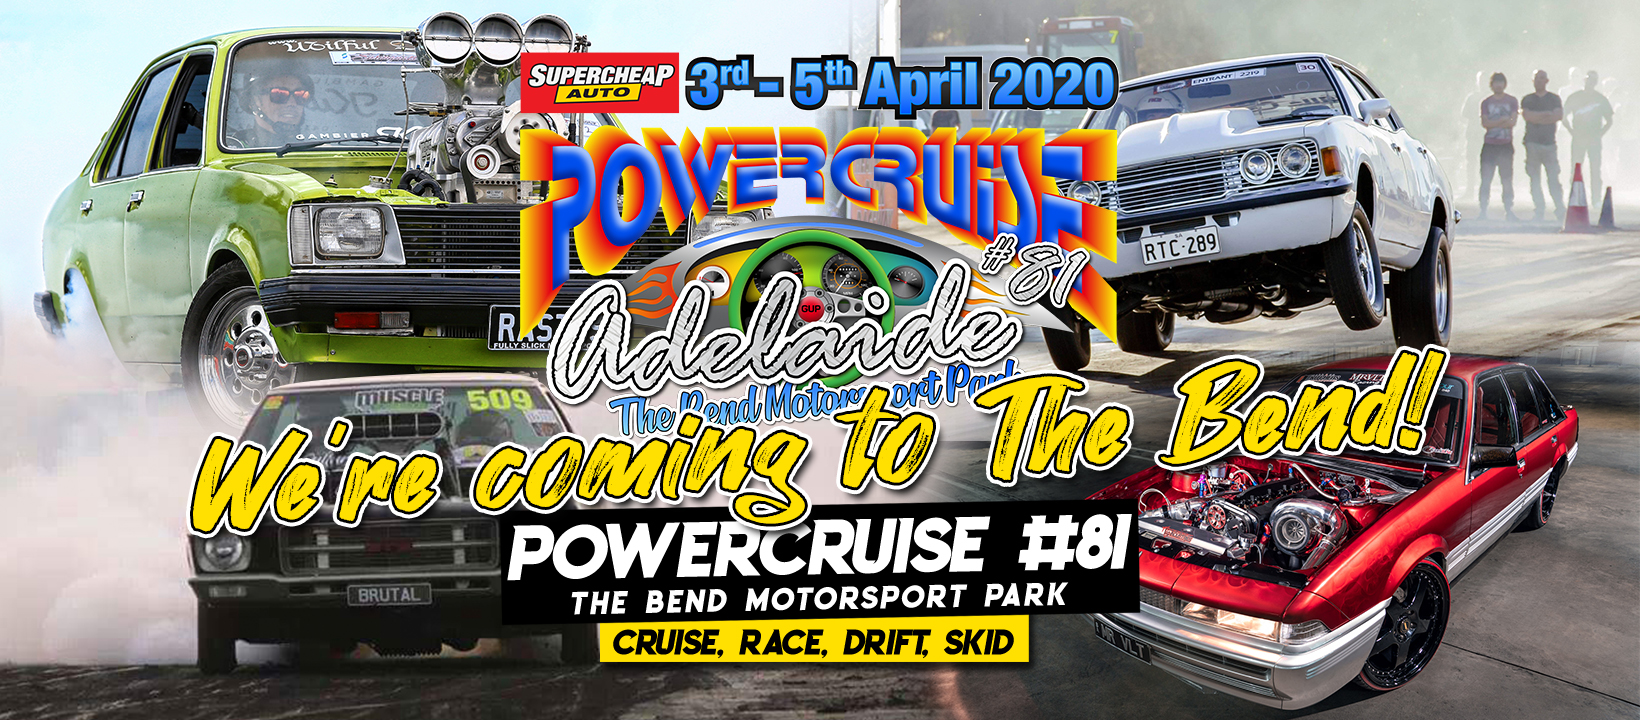 MEDIA RELEASE FROM POWERCRUISE MANAGEMENT TODAY 18th March 2020